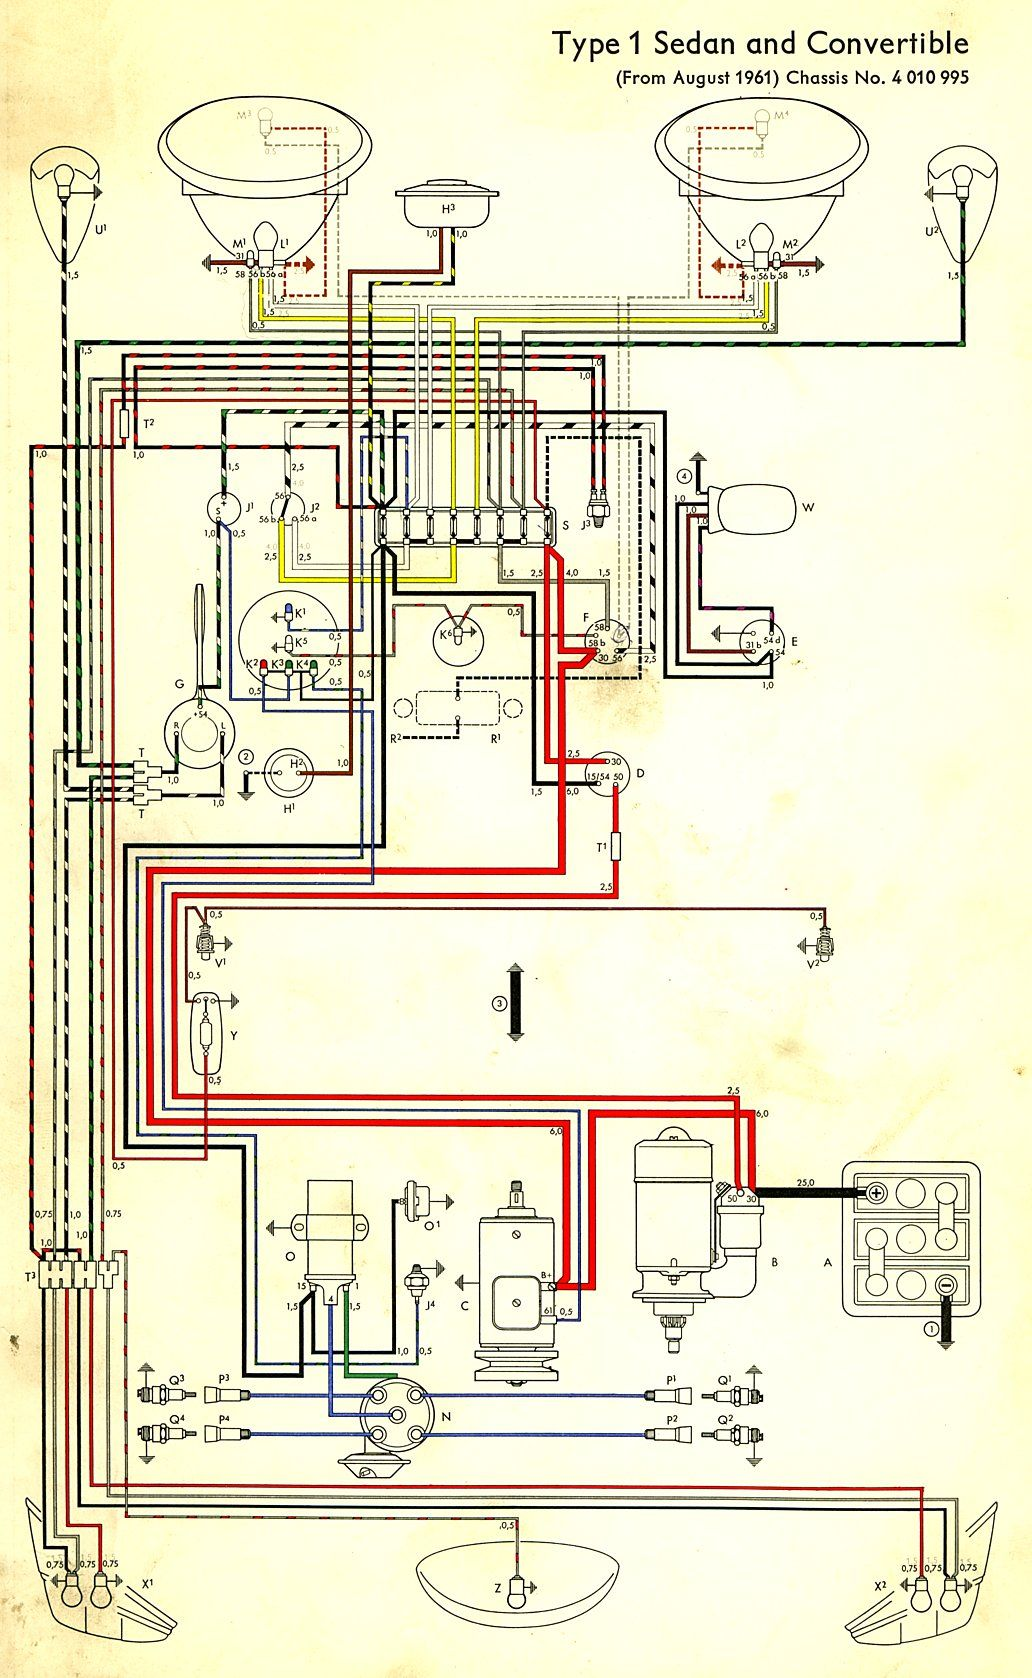 medium resolution of 1966 vw beetle wiring harness wiring diagram inside 1974 vw beetle alternator wiring diagram 1966 vw